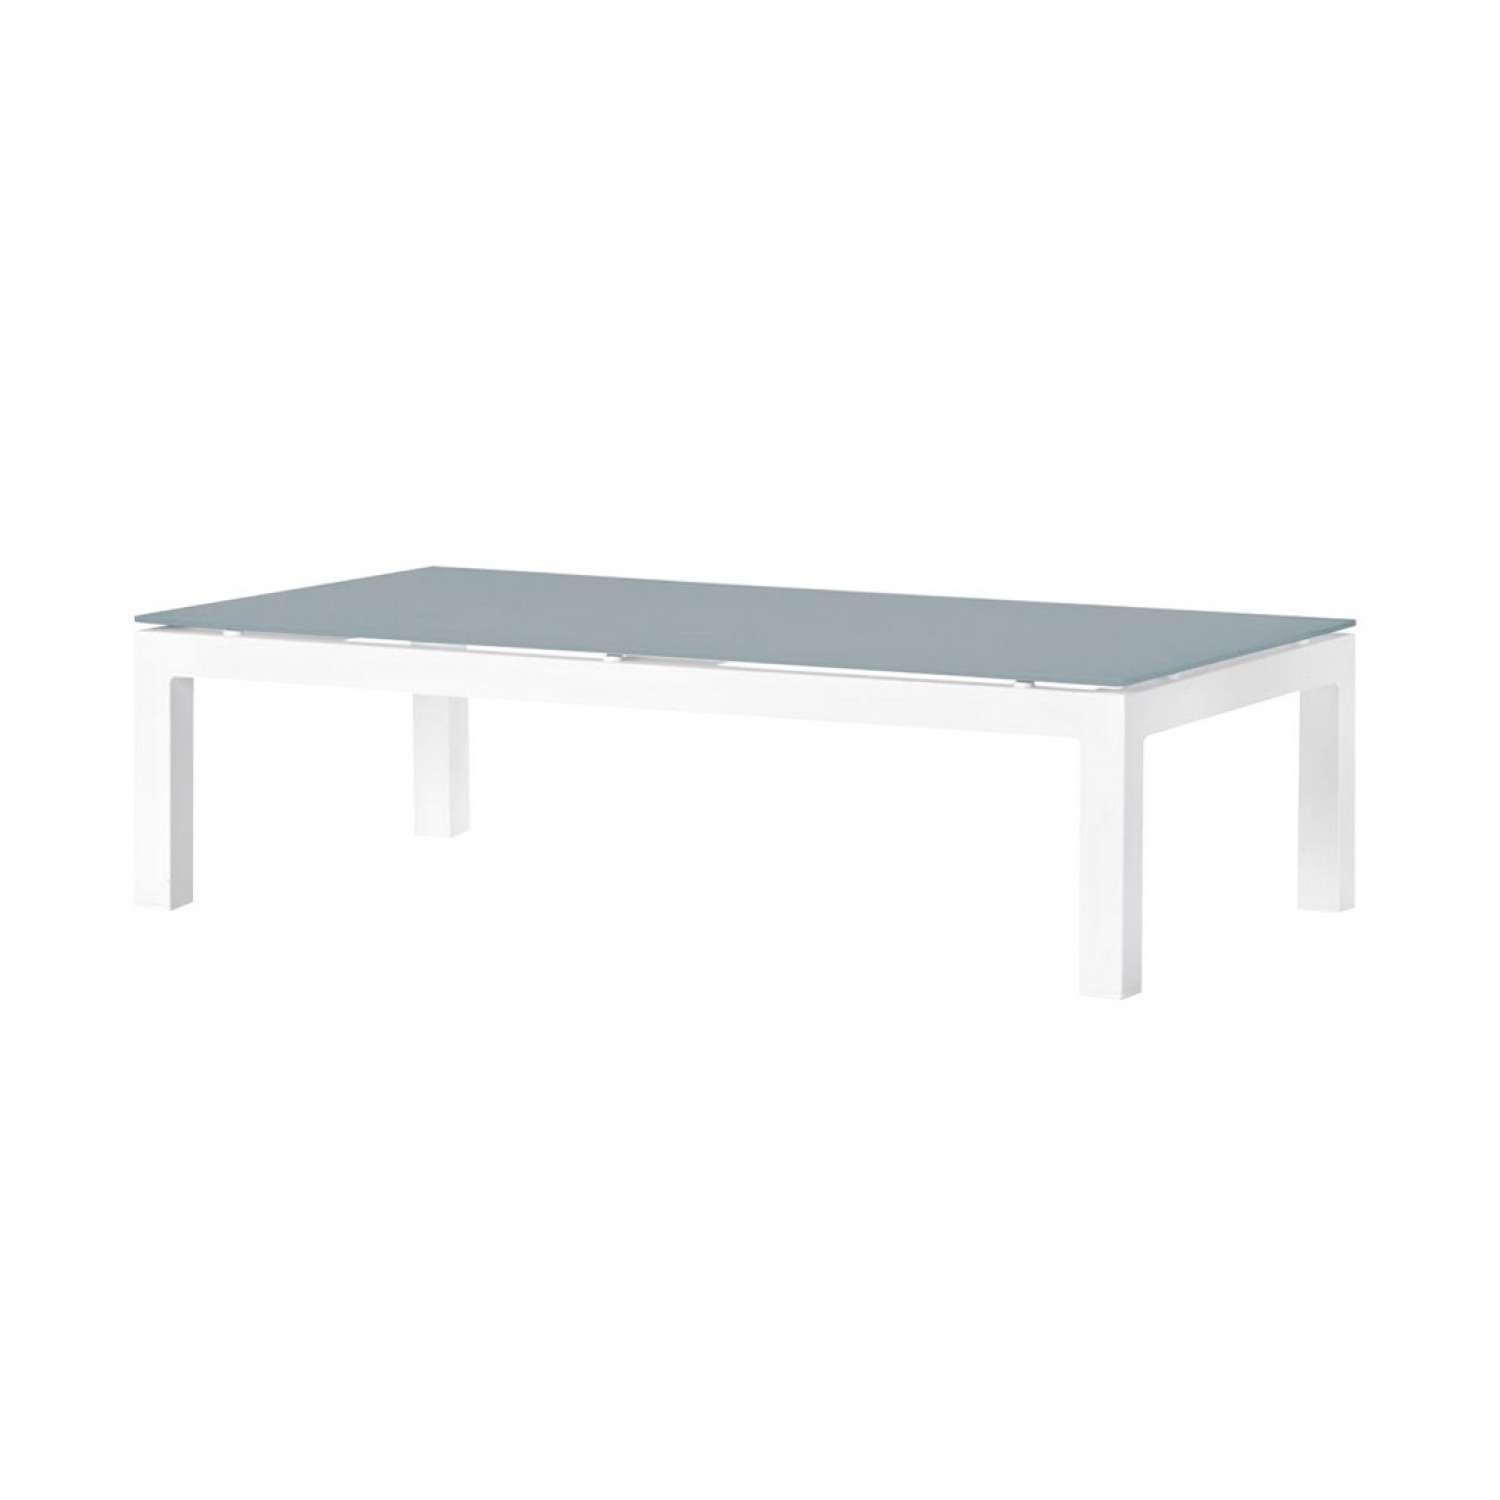 Recent Aluminium Coffee Tables In Venice Aluminium Coffee Table In White With Frosted Grey Glass (View 5 of 20)